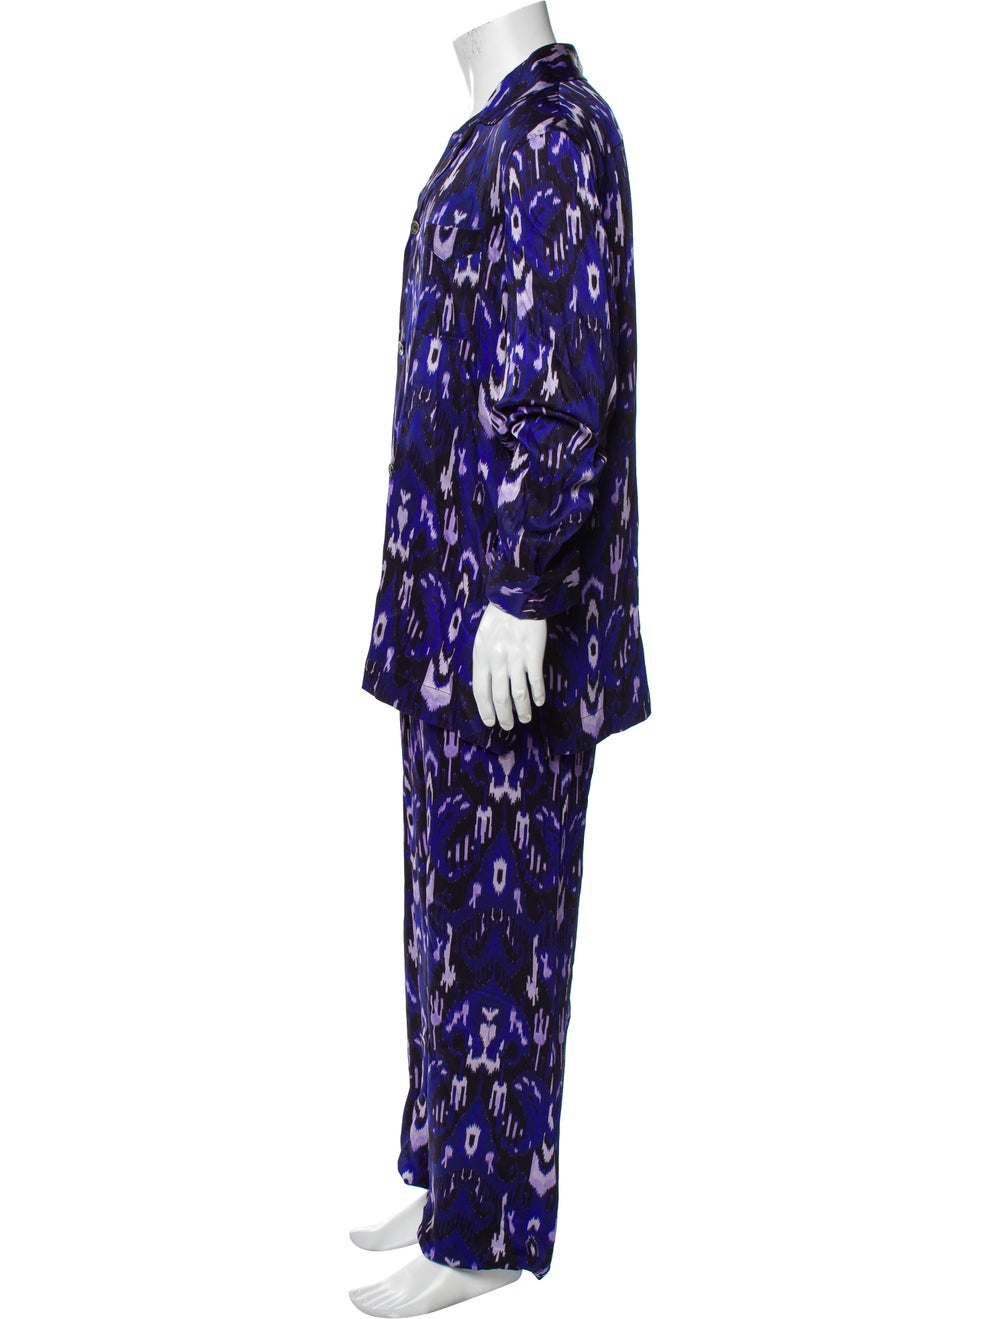 Tom Ford Silk Graphic Print Pajama Set Purple - image 2